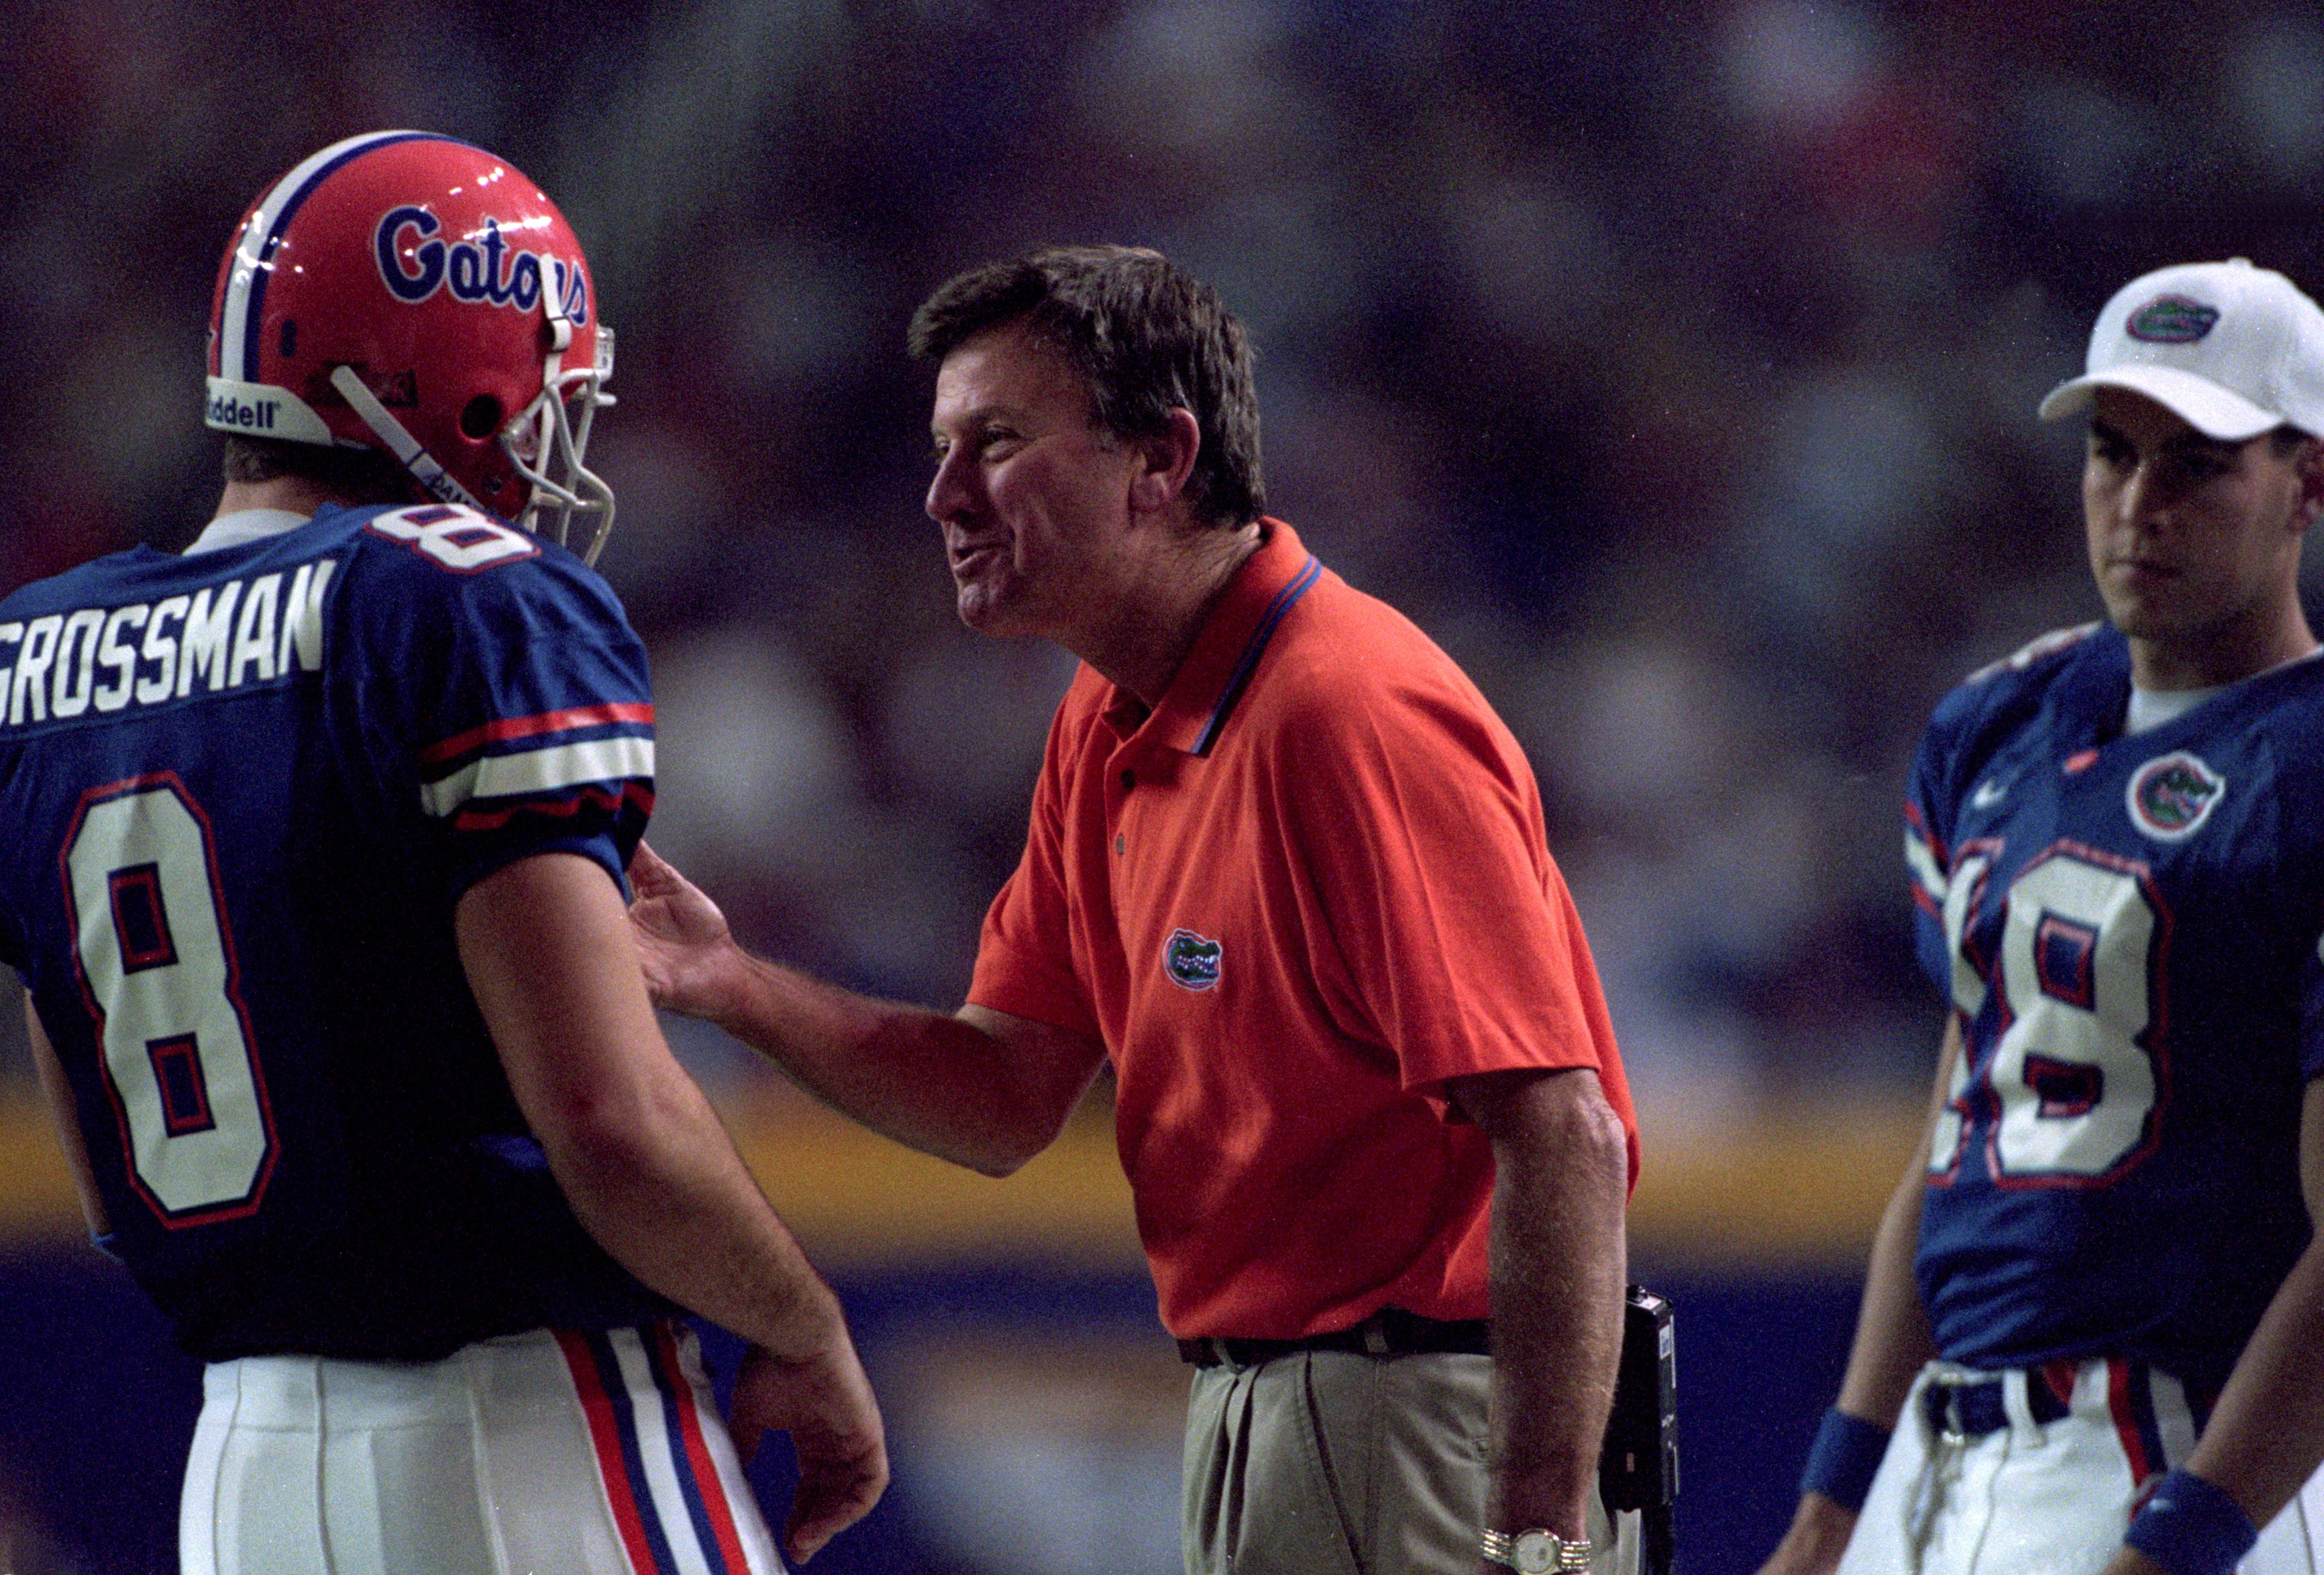 A former quarterback, Steve Spurrier now gives instructions to passers, like here with former Gator Rex Grossman.